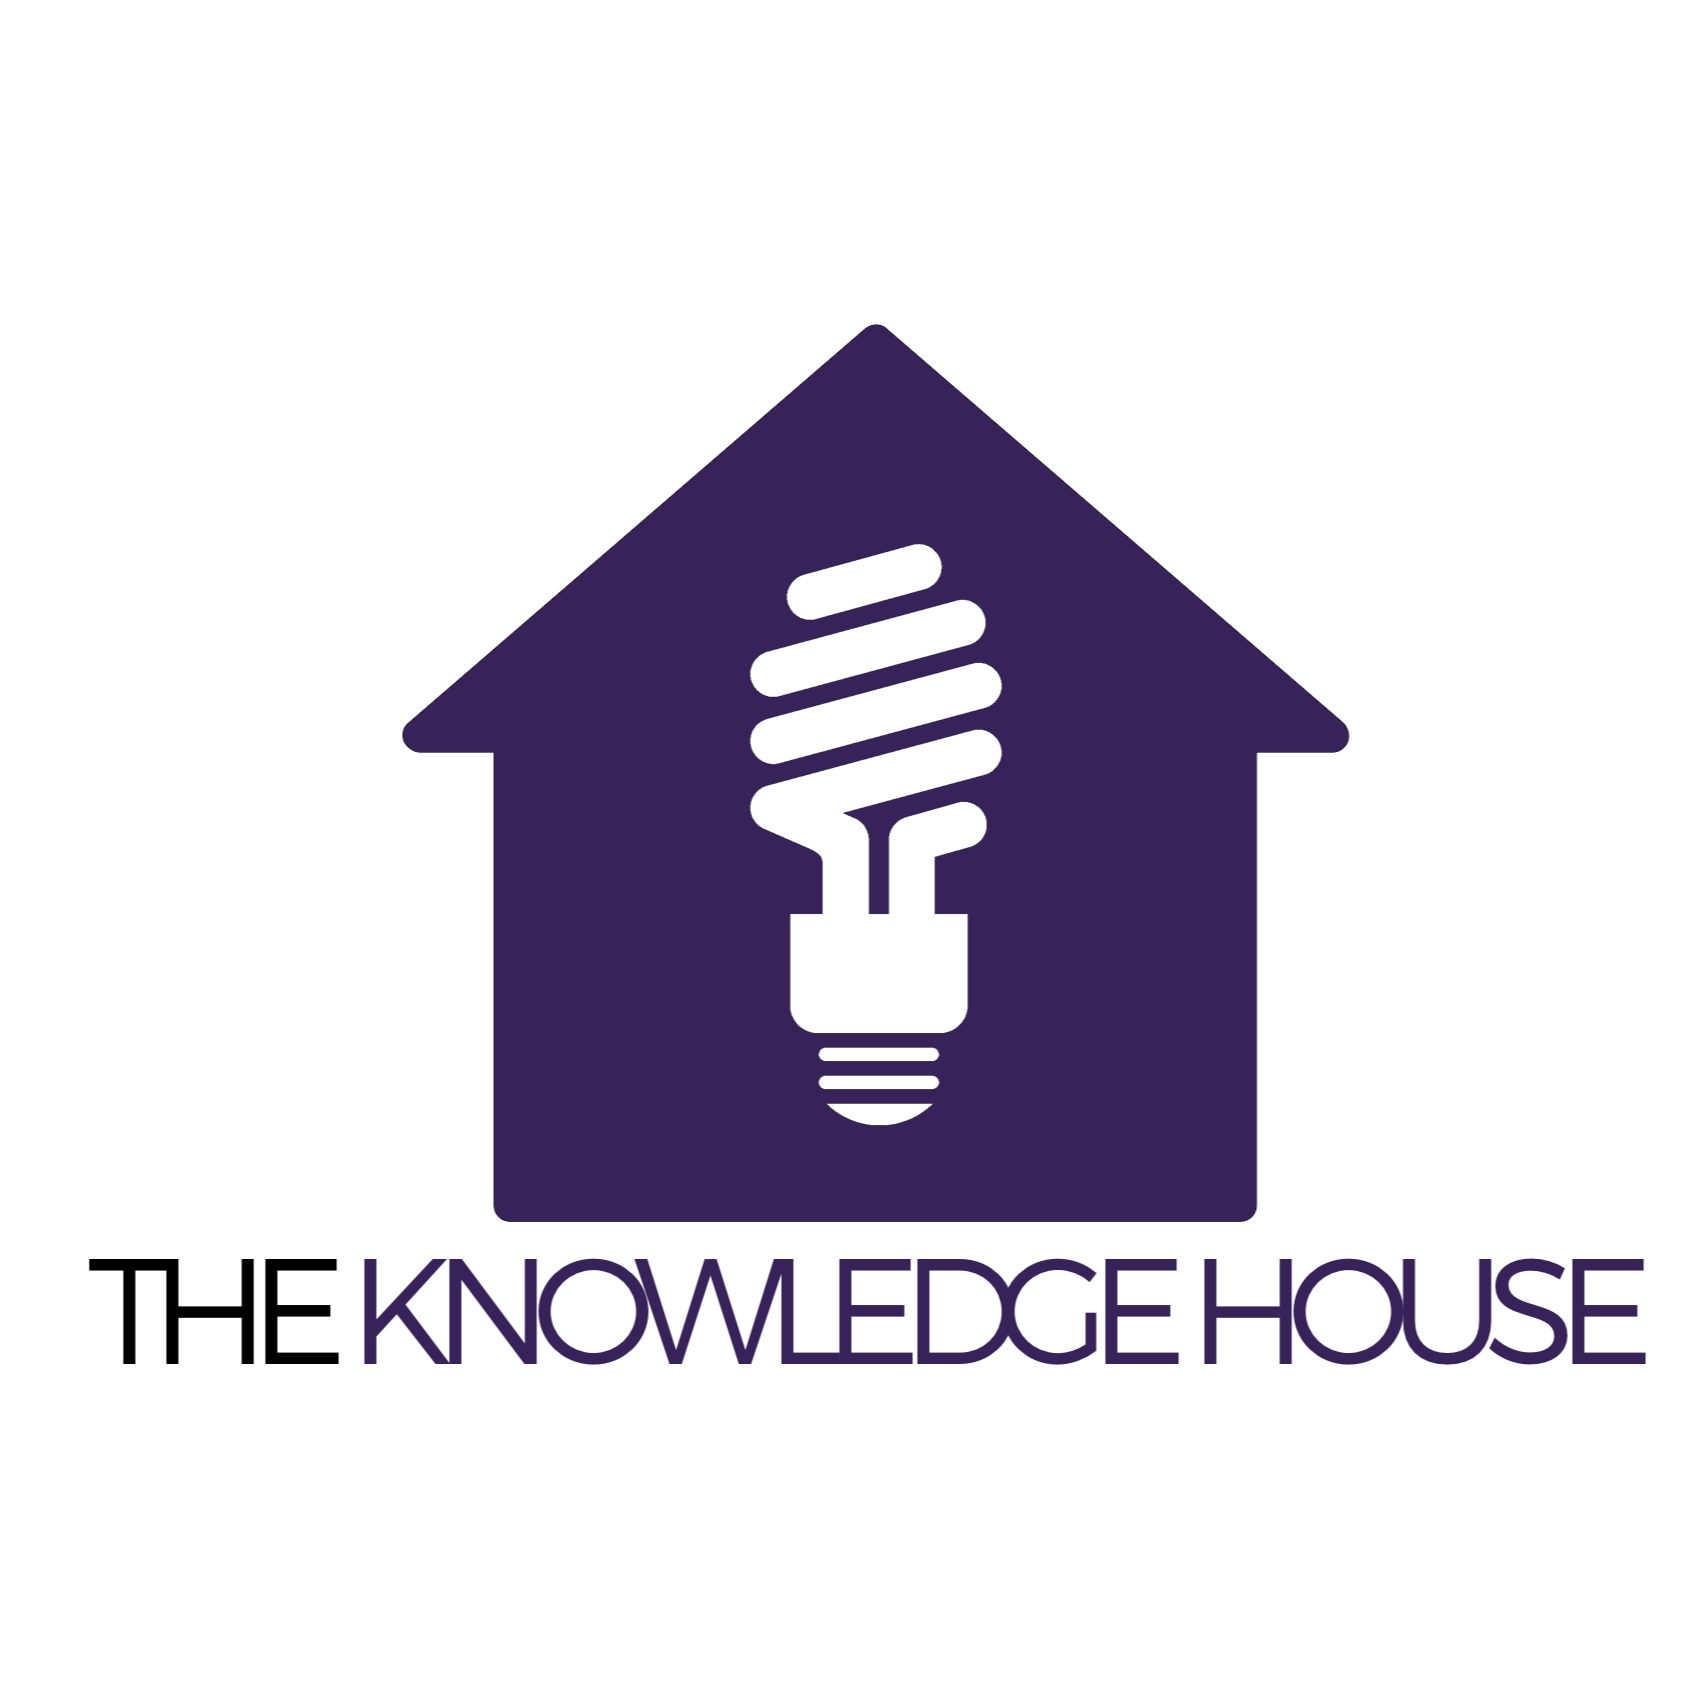 The Knowledge House